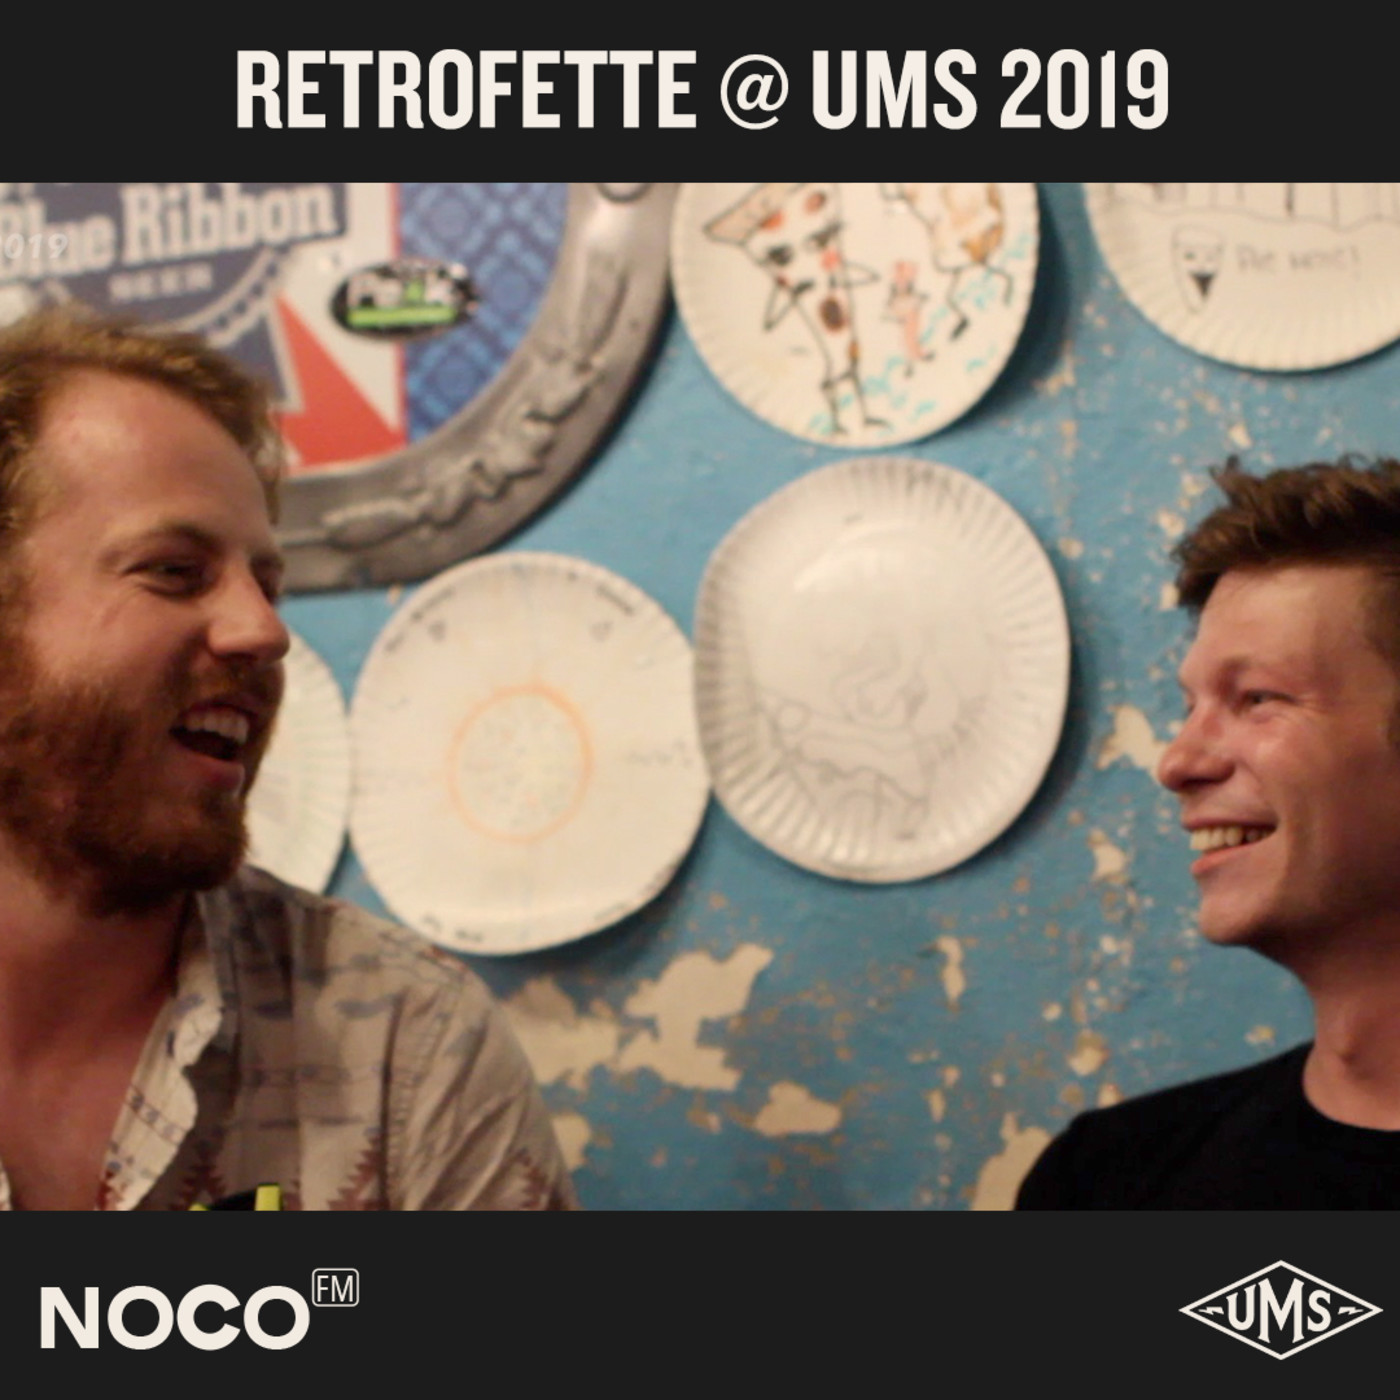 Talking with Retrofette @ UMS 2019